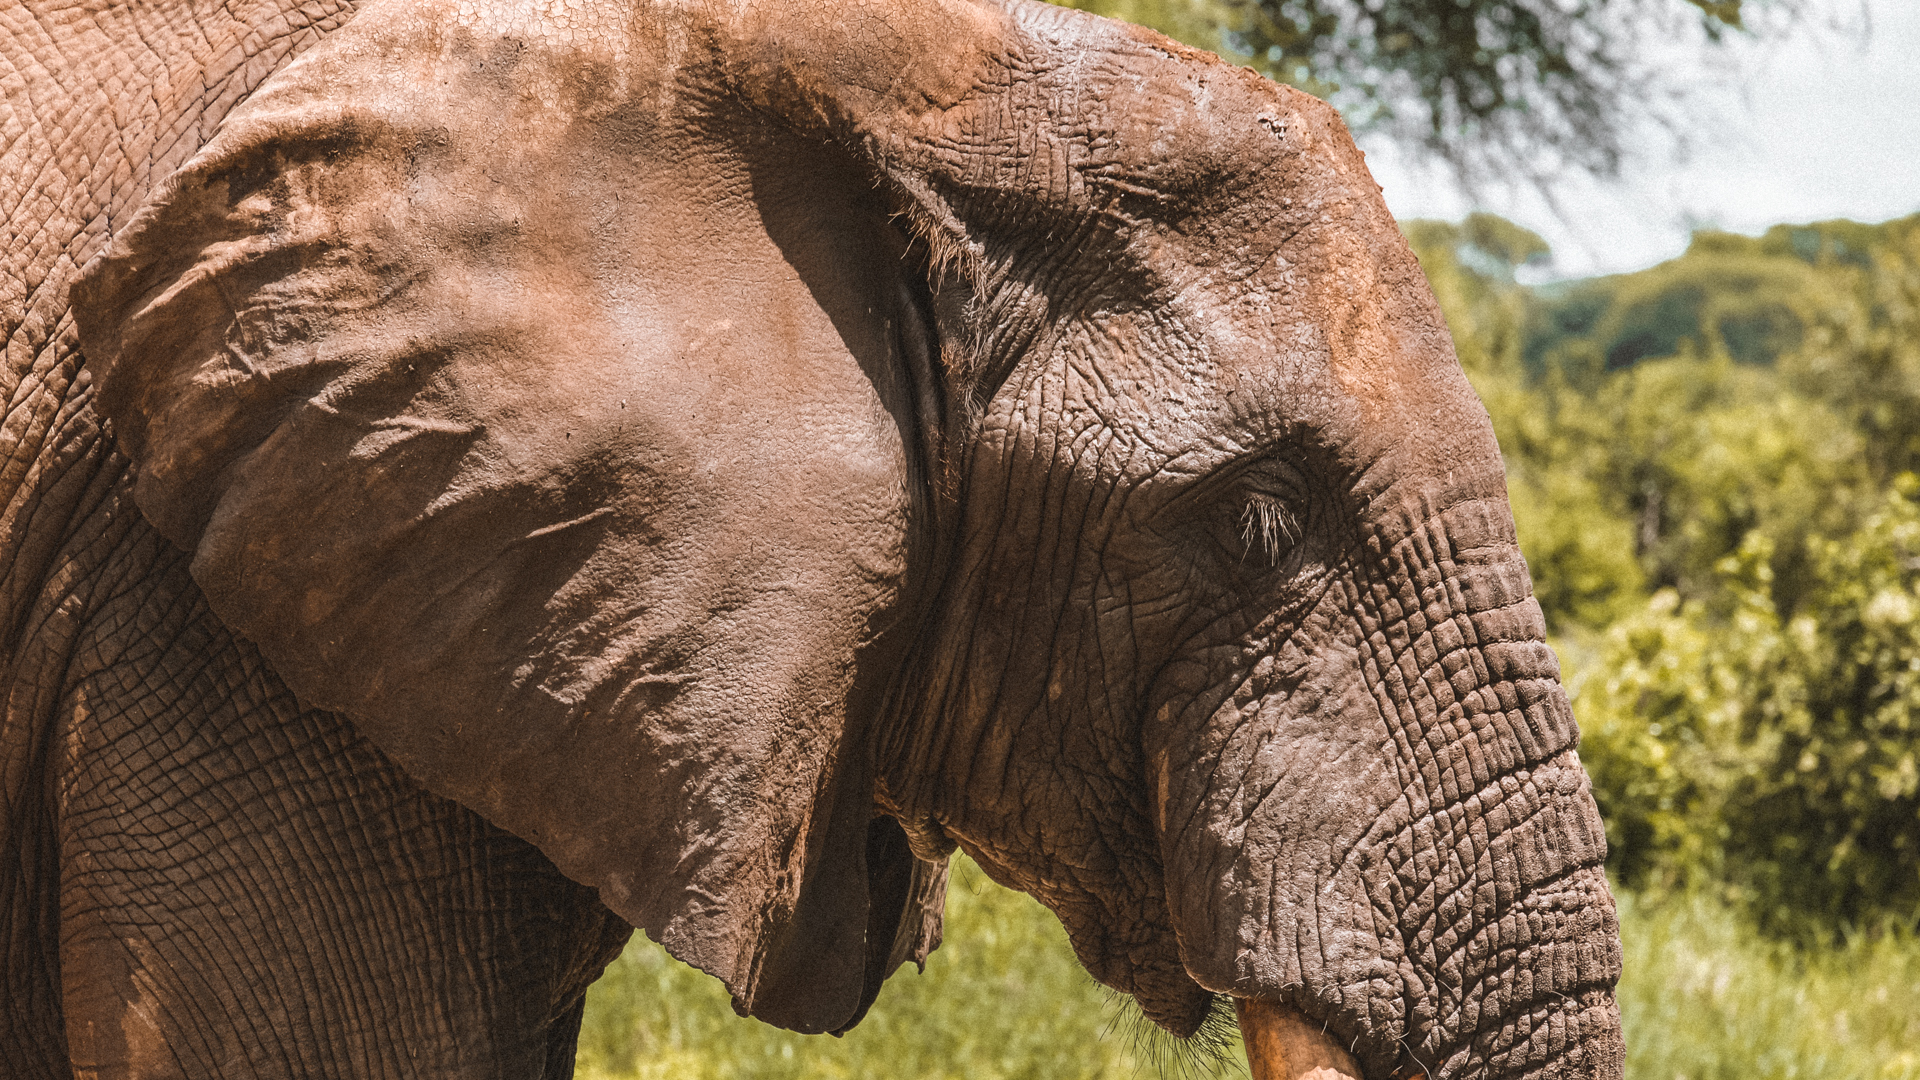 An African bush elephant close and personal in the Serengeti National Park, Tanzania